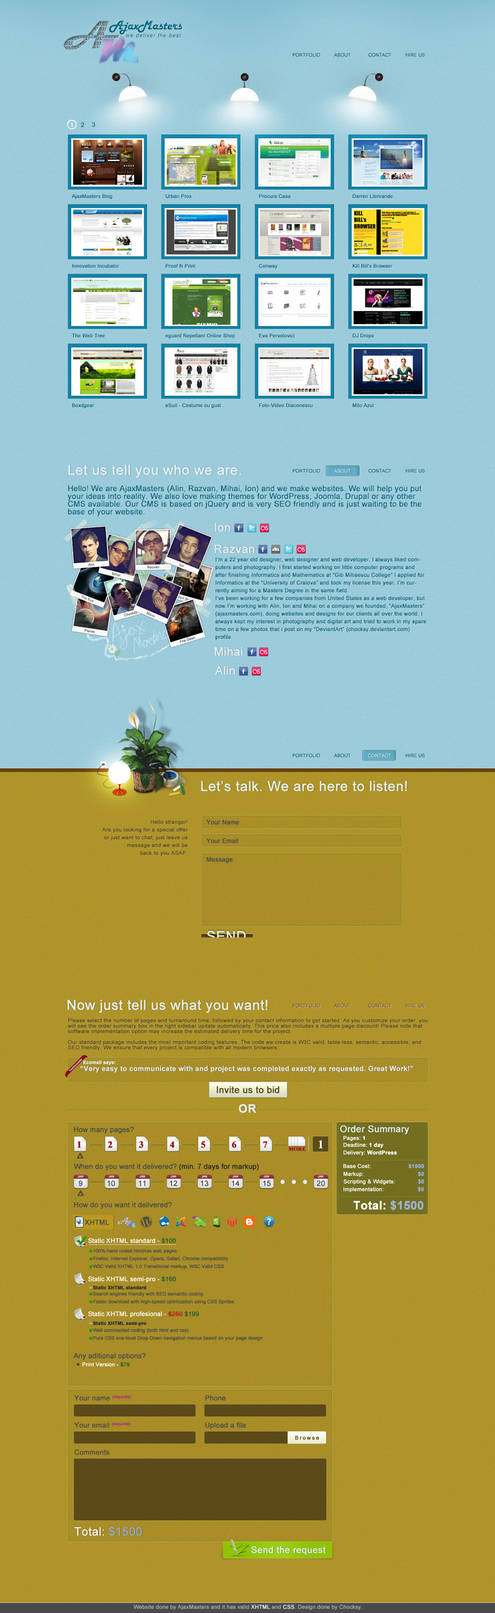 AjaxMasters Website Design